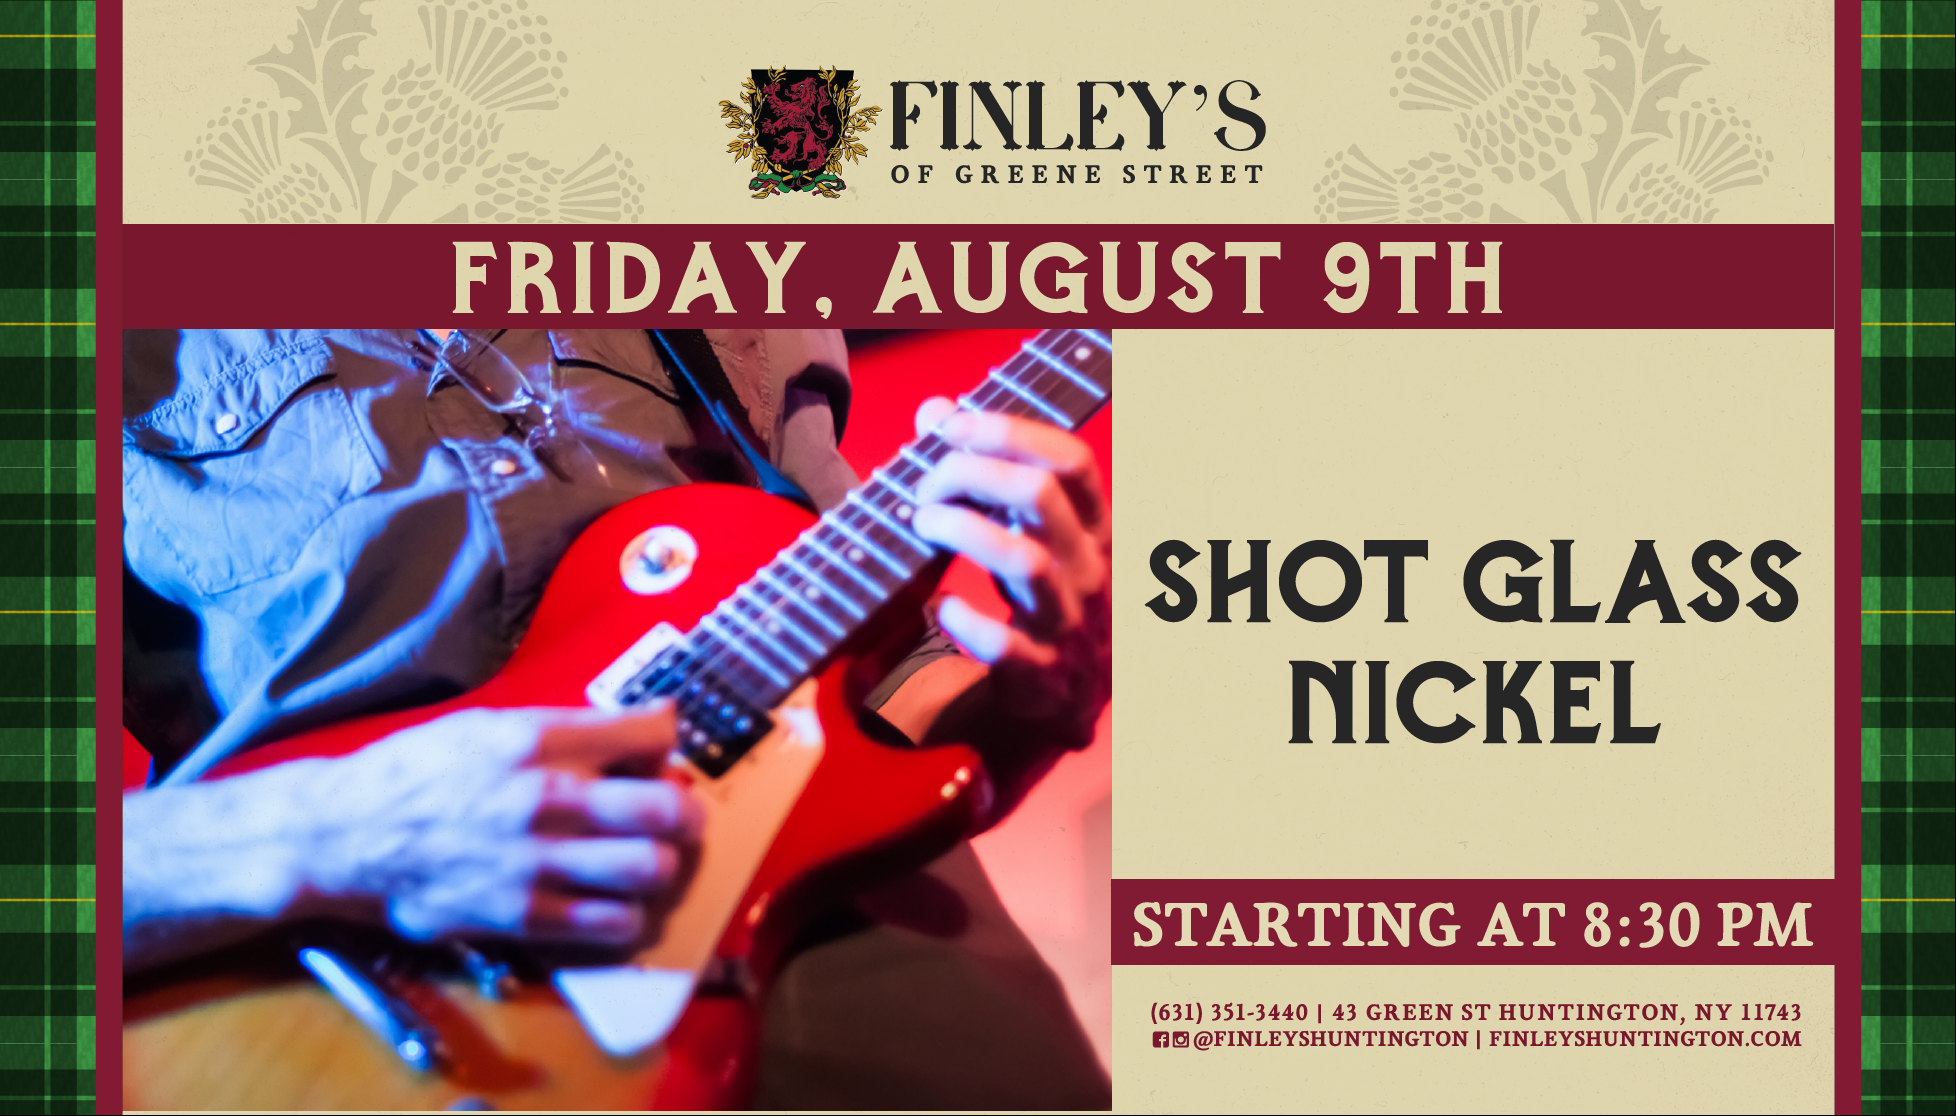 Flyer for live music with Shot Glass Nickel on August 9th at 8:30pm